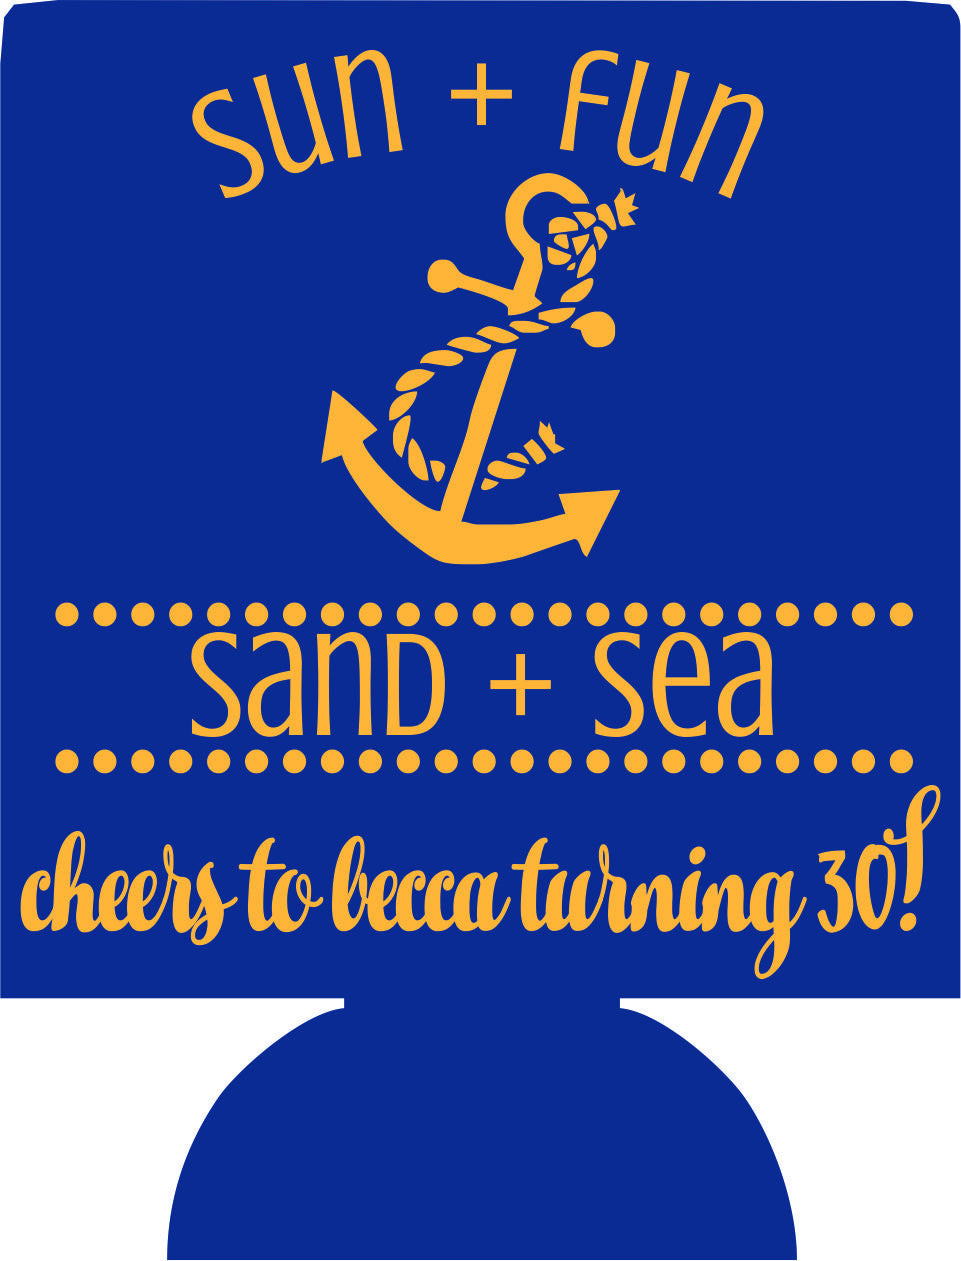 Sand and Sea Beach 30th Birthday koozies